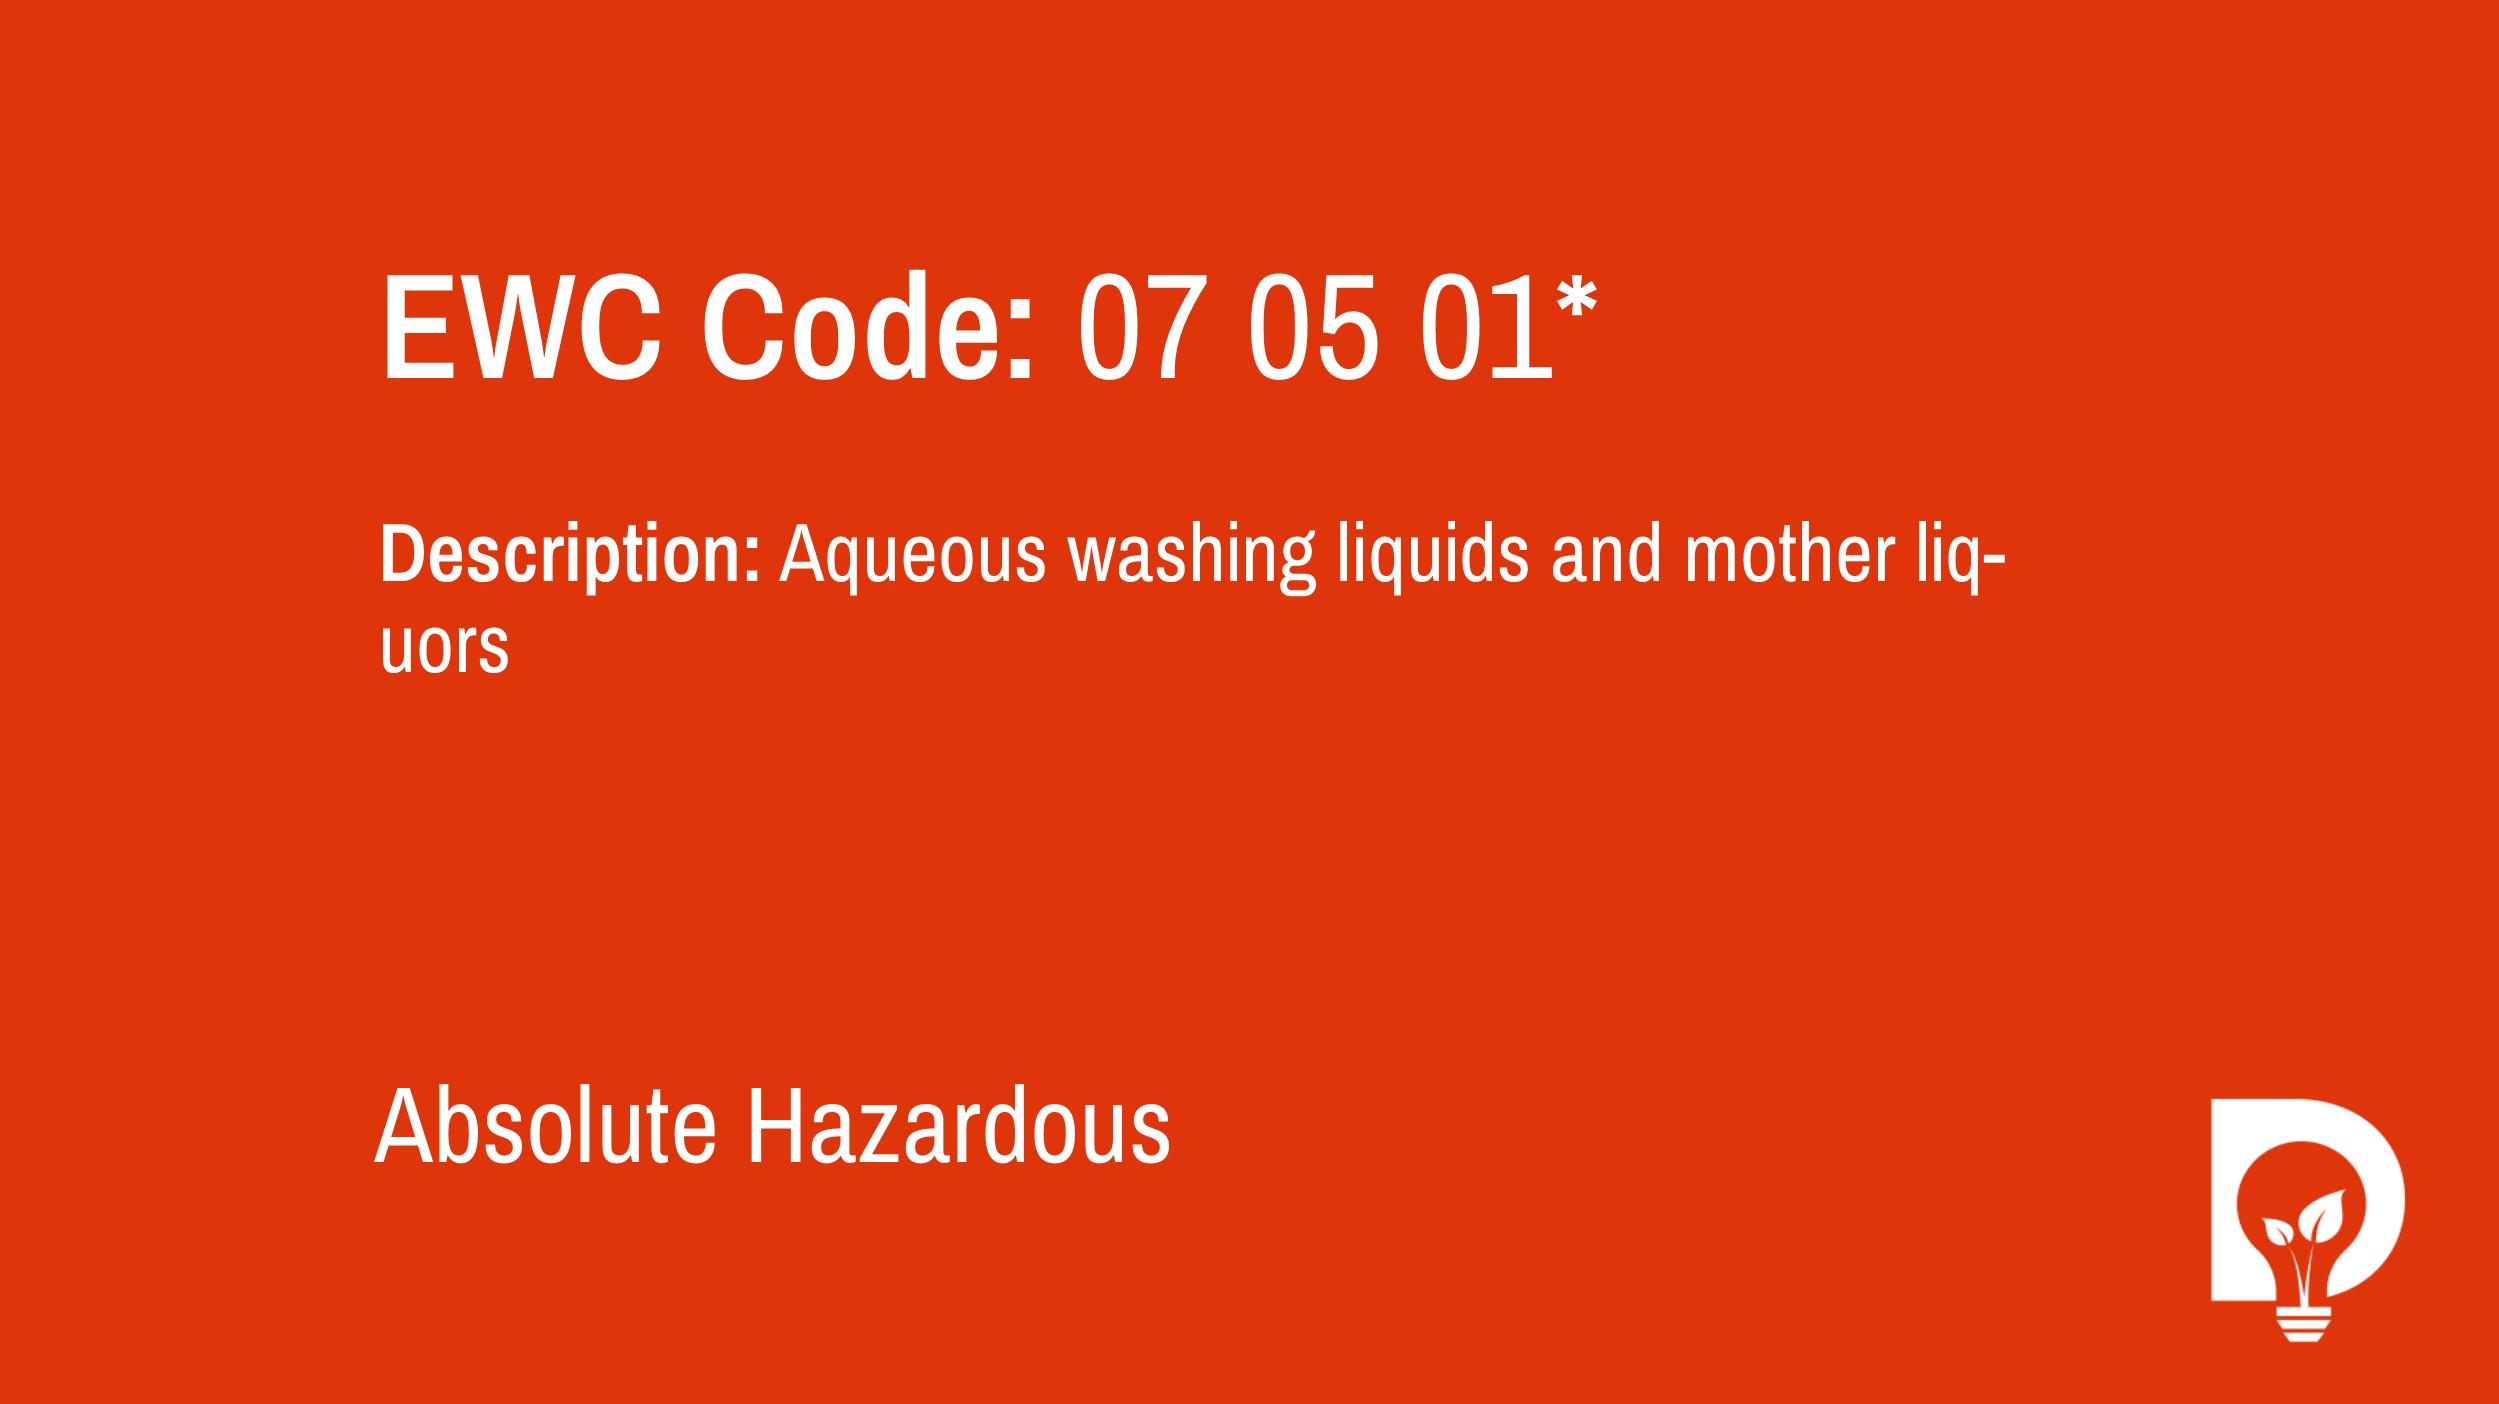 EWC Code: 07 05 01* - aqueous washing liquids and mother liquors. Type: Absolute Hazardous. Image by Dsposal